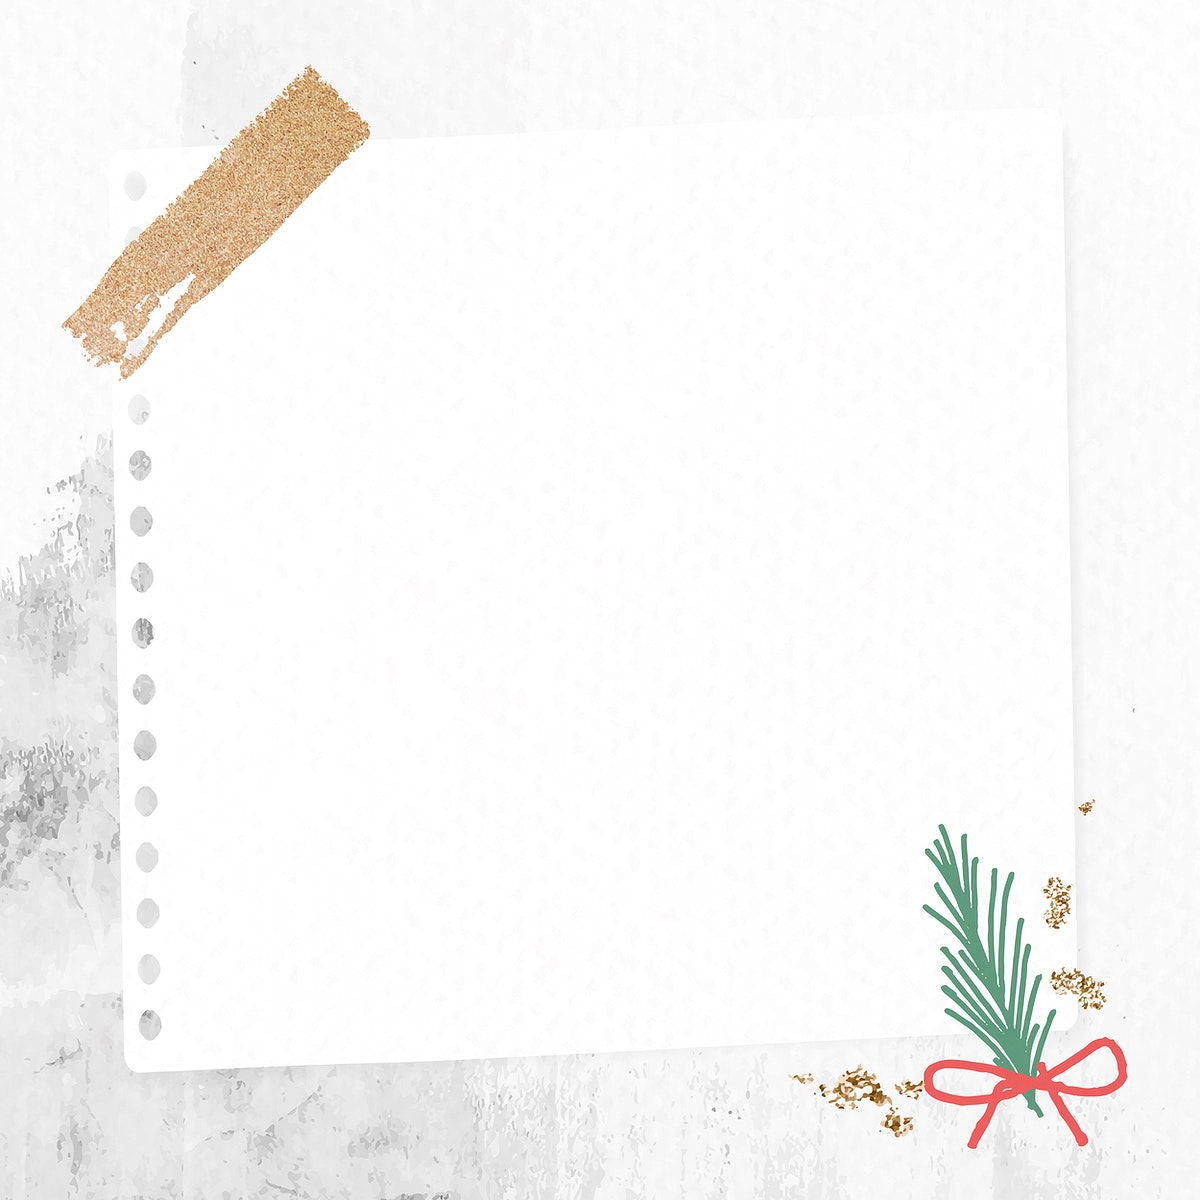 Decorative Christmas note paper on stained background vector